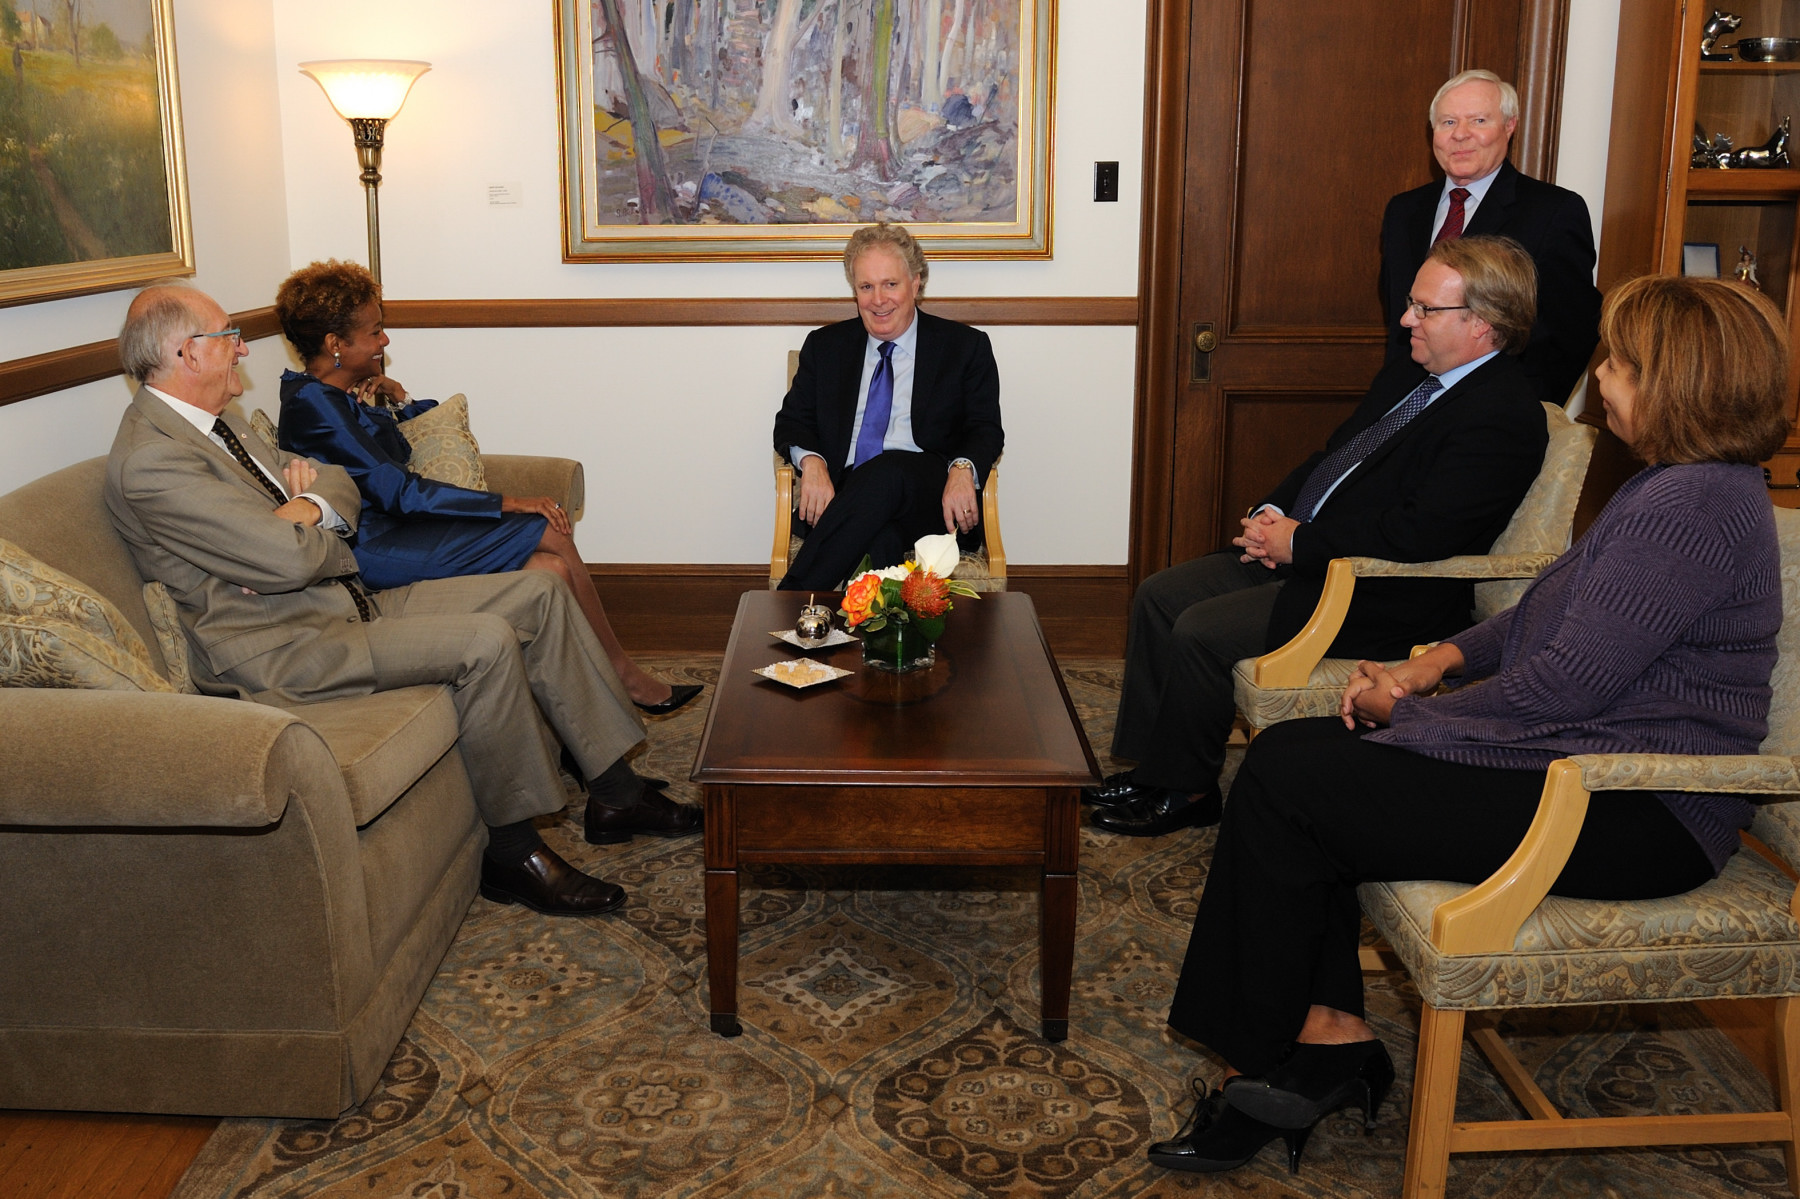 Before leaving Québec City, Their Excellencies met with the Honourable Jean Charest, Premier of Quebec.